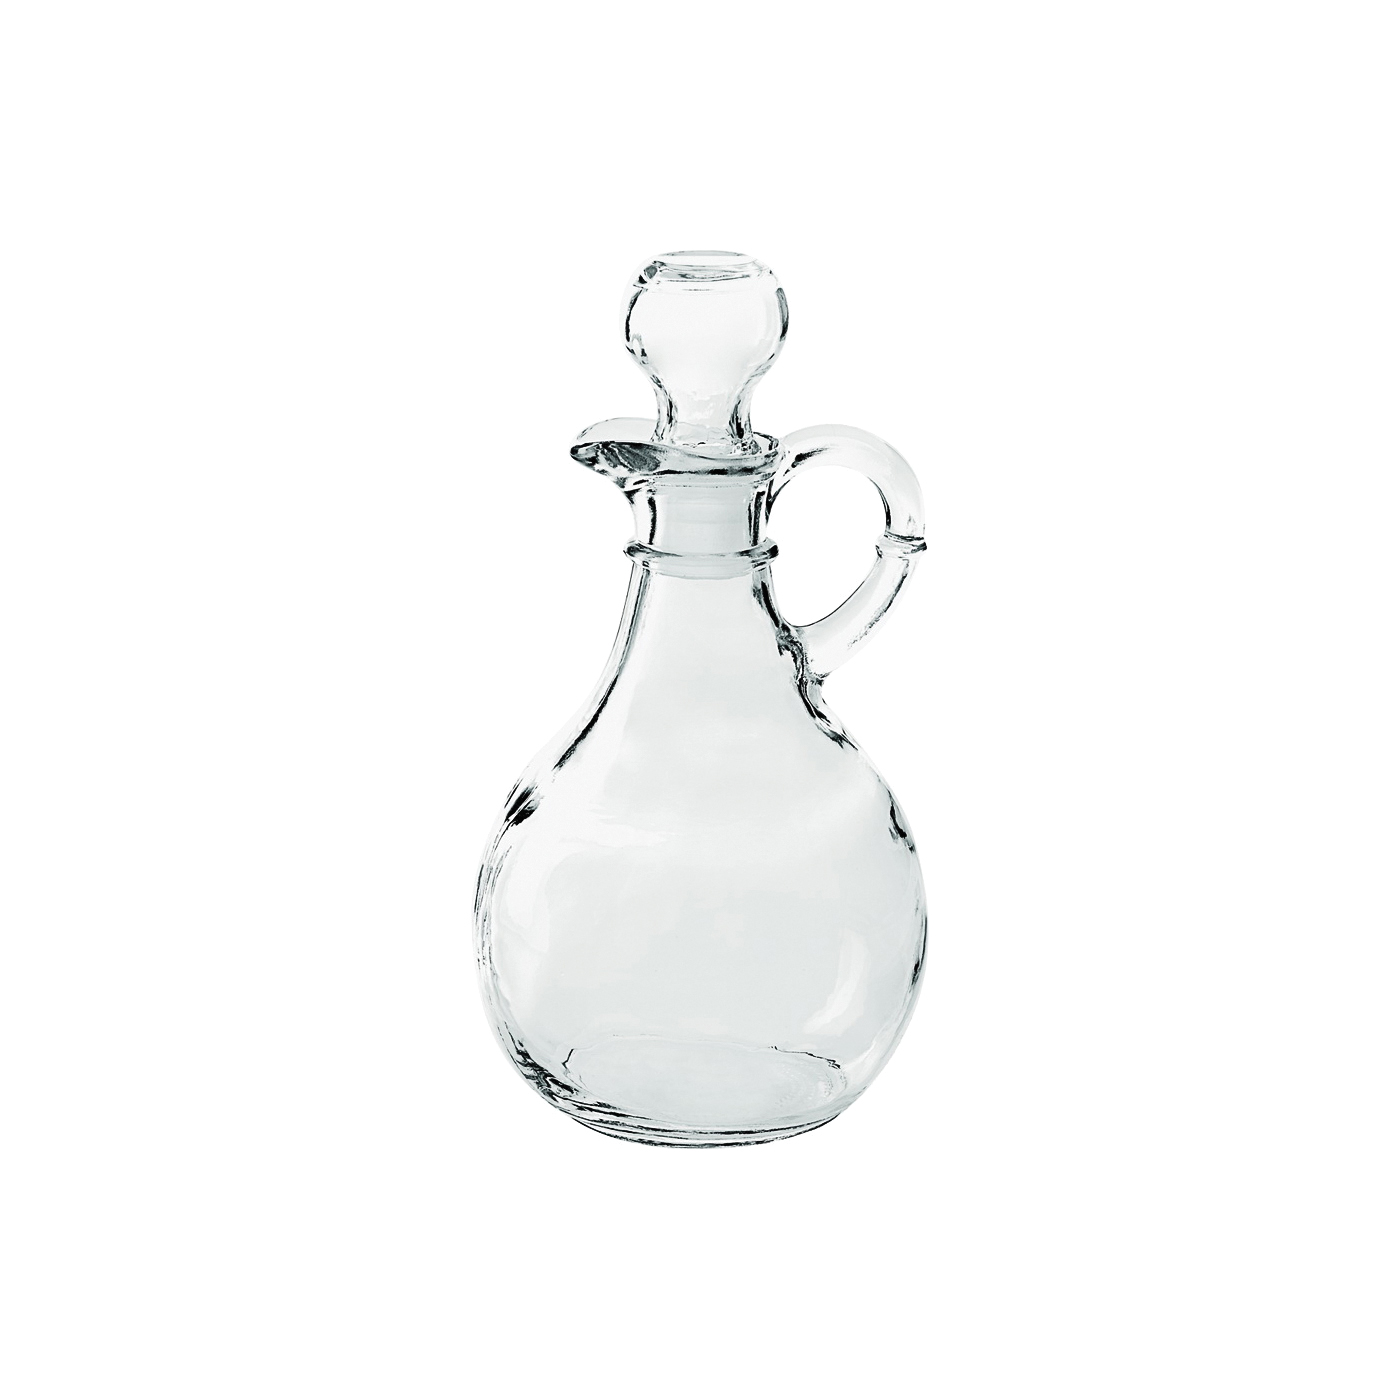 Picture of Anchor Hocking 980R Presence Cruet, 10 oz Capacity, Glass, Clear, 4-1/4 in L, 4-1/4 in W, 7 in H